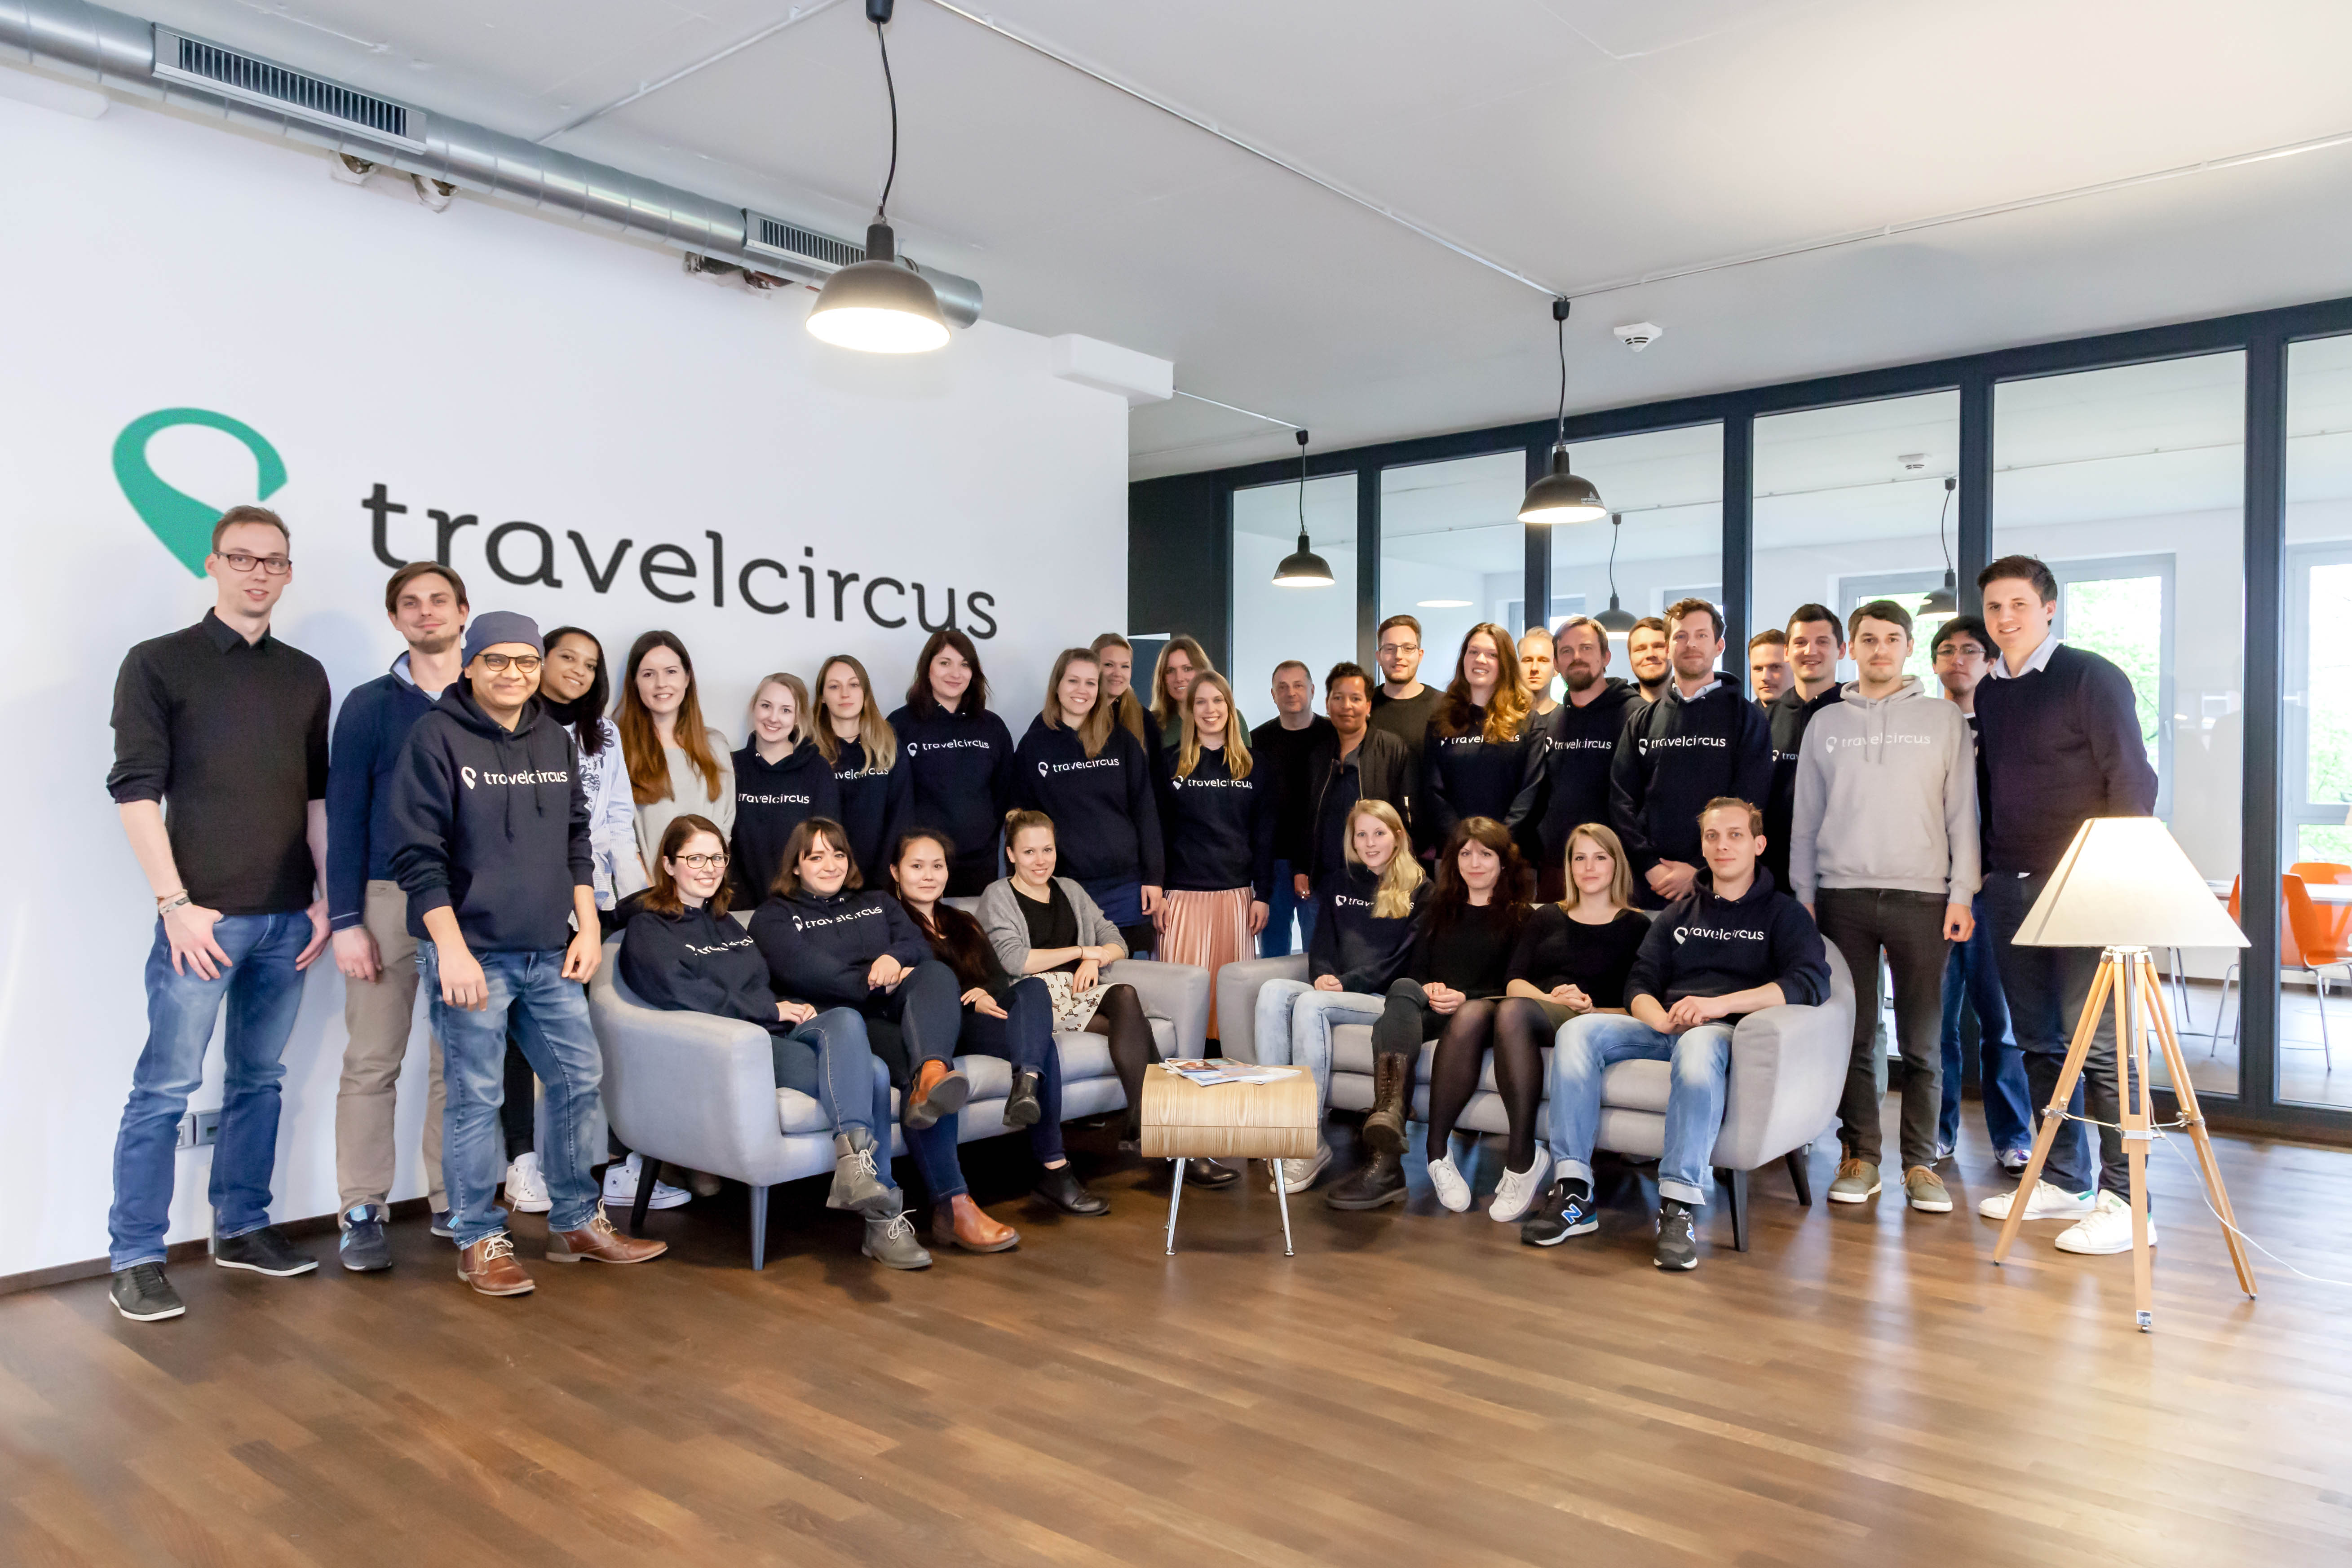 Travelcircus workforce team